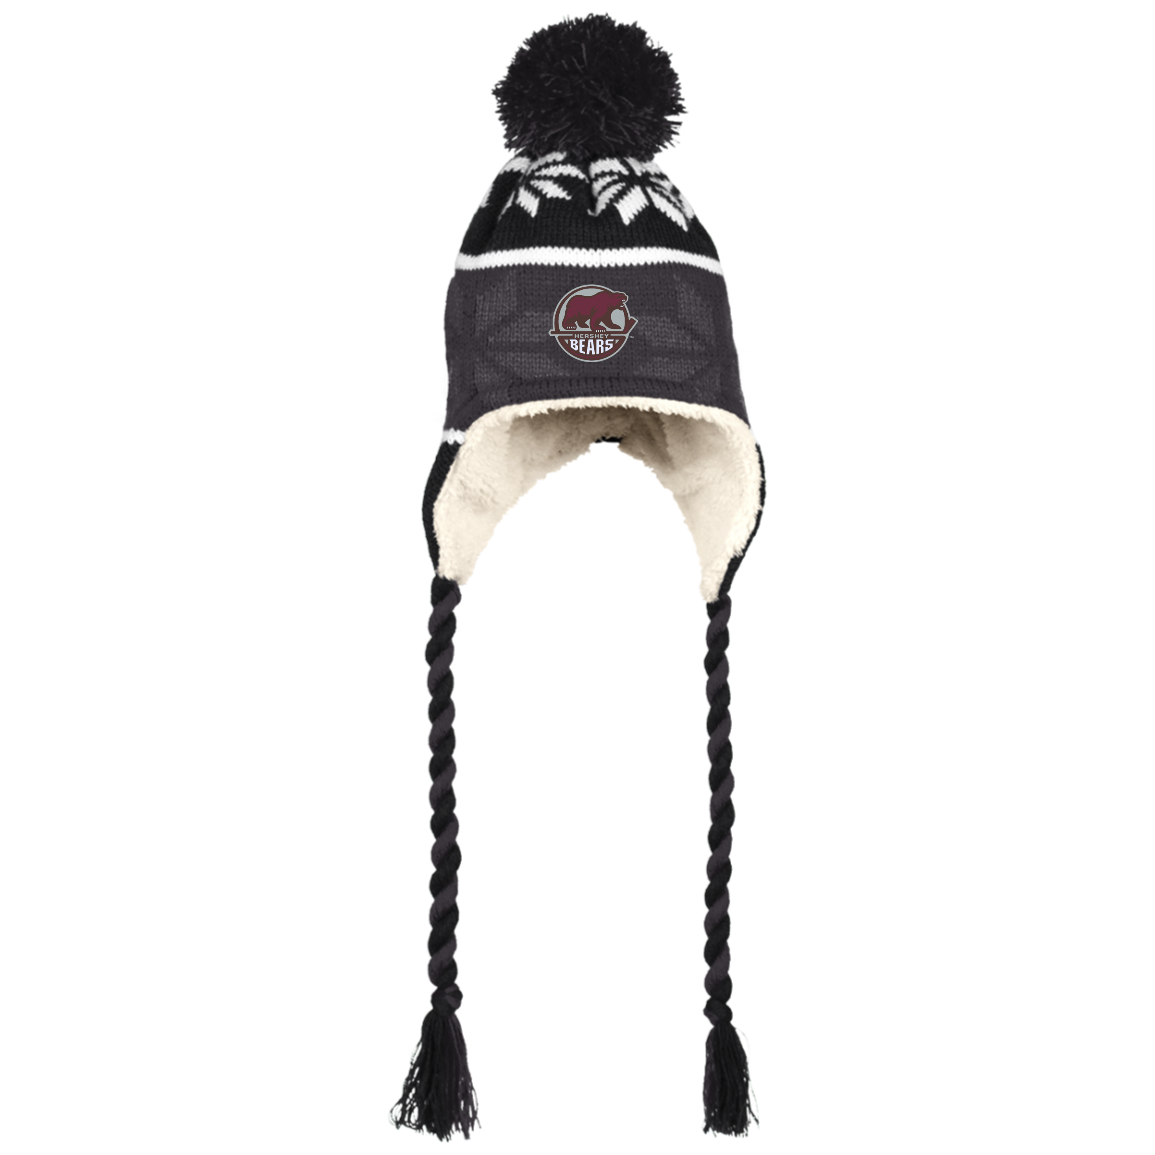 Hershey Bears Winter Hat with Ear Flaps and Braids – ahlstore.com 6cf172581f0